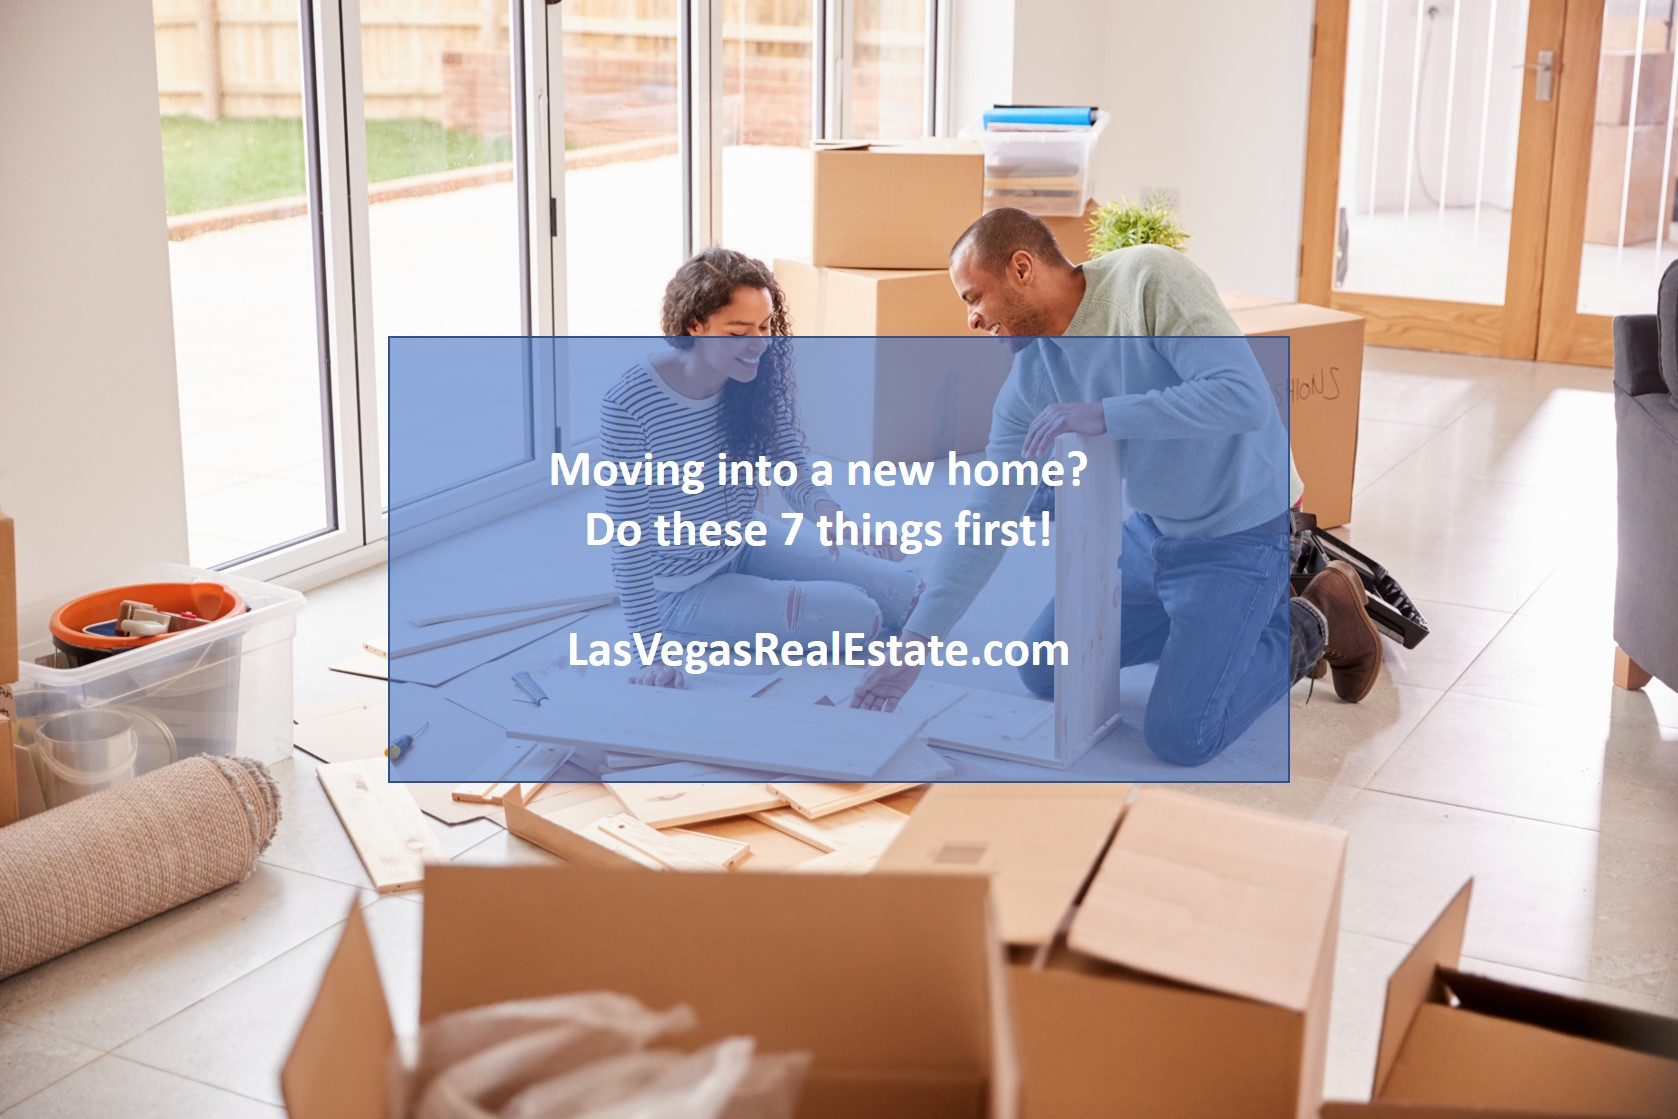 Moving into a new home? Do these 7 things first! LasVegasRealEstate.com